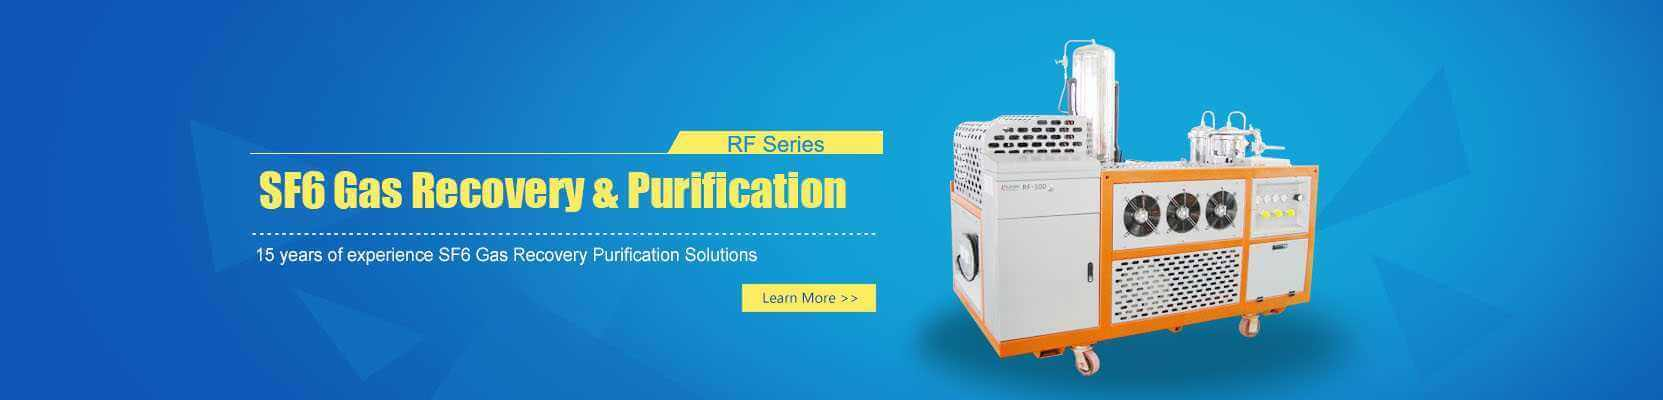 sf6 gas recovery and purification banner